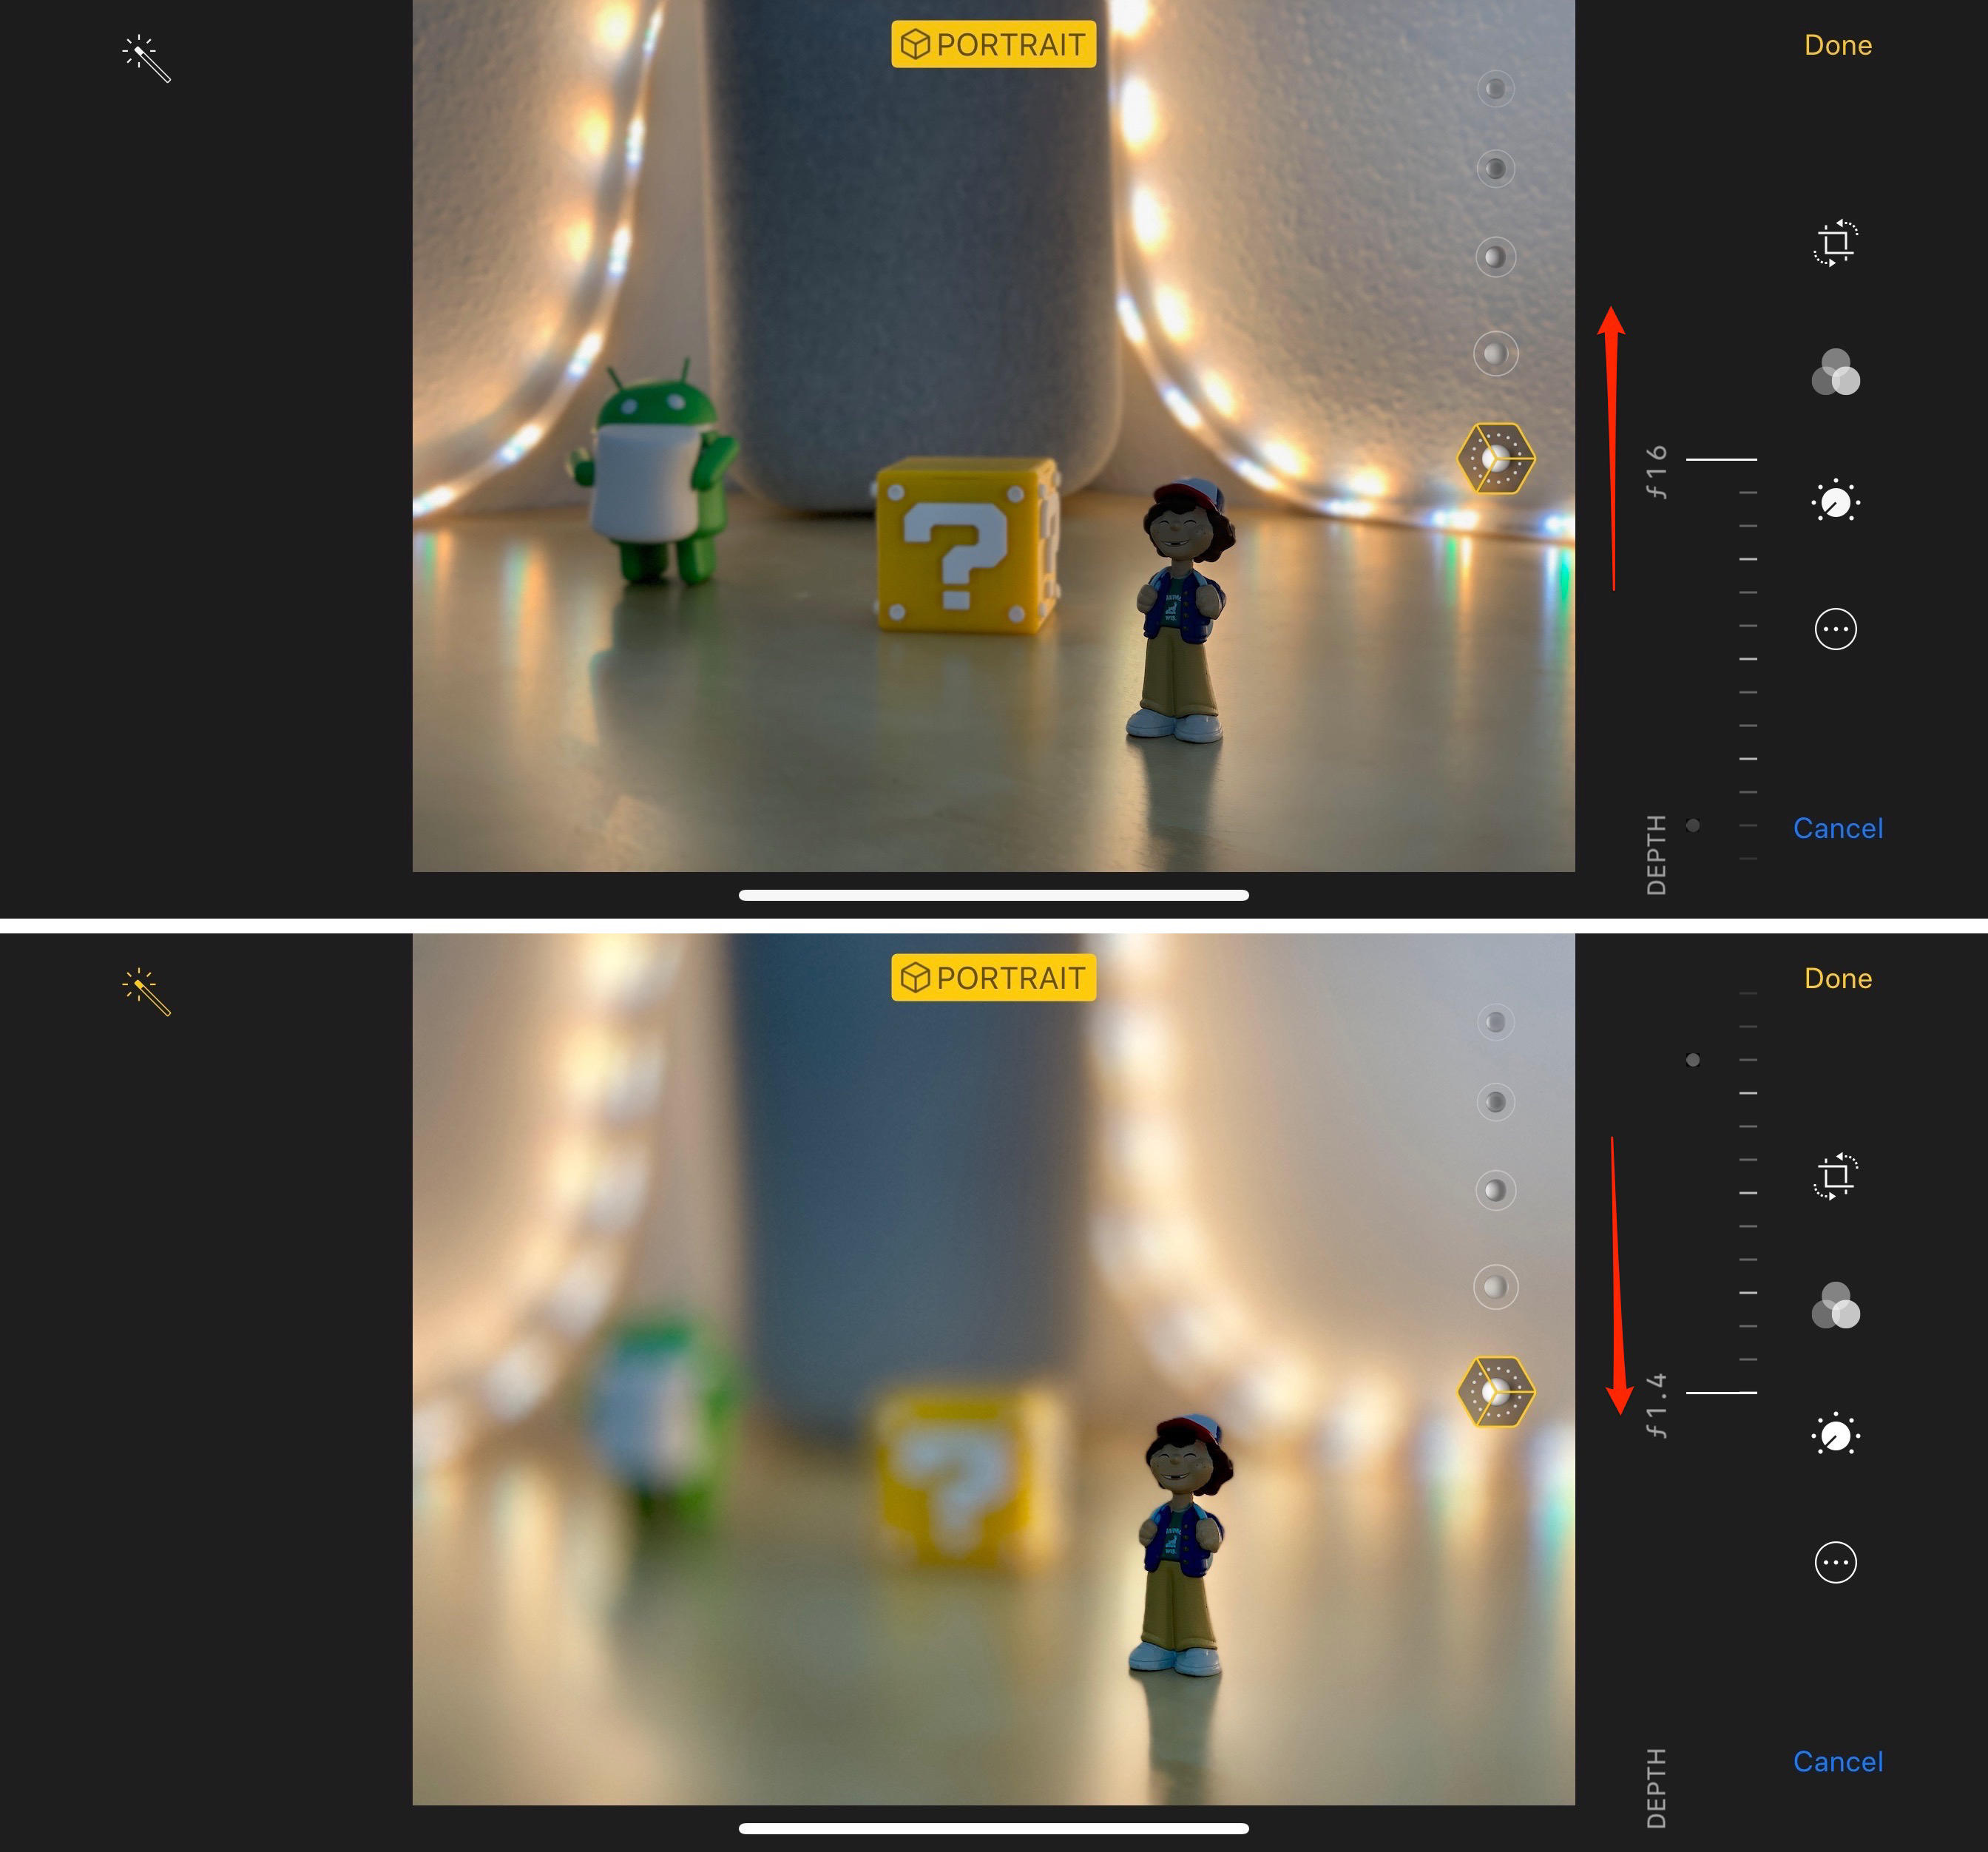 Adjust portrait mode blur